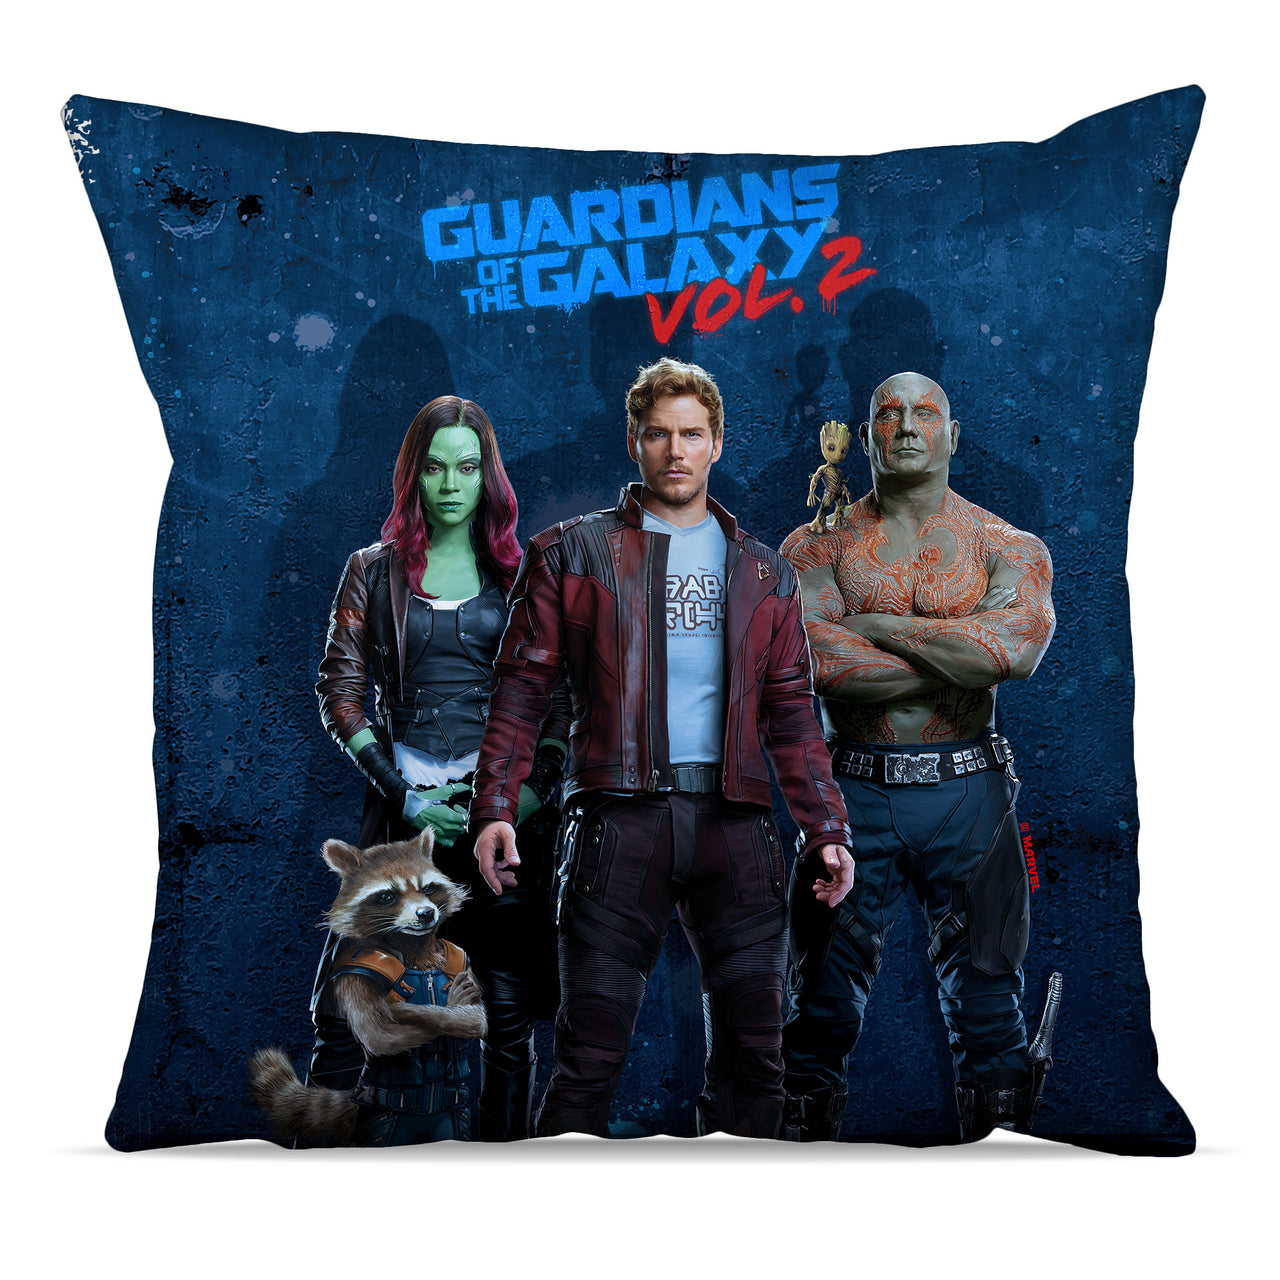 Marvel Guardians of the Galaxy Grunge Cushions, Gifts